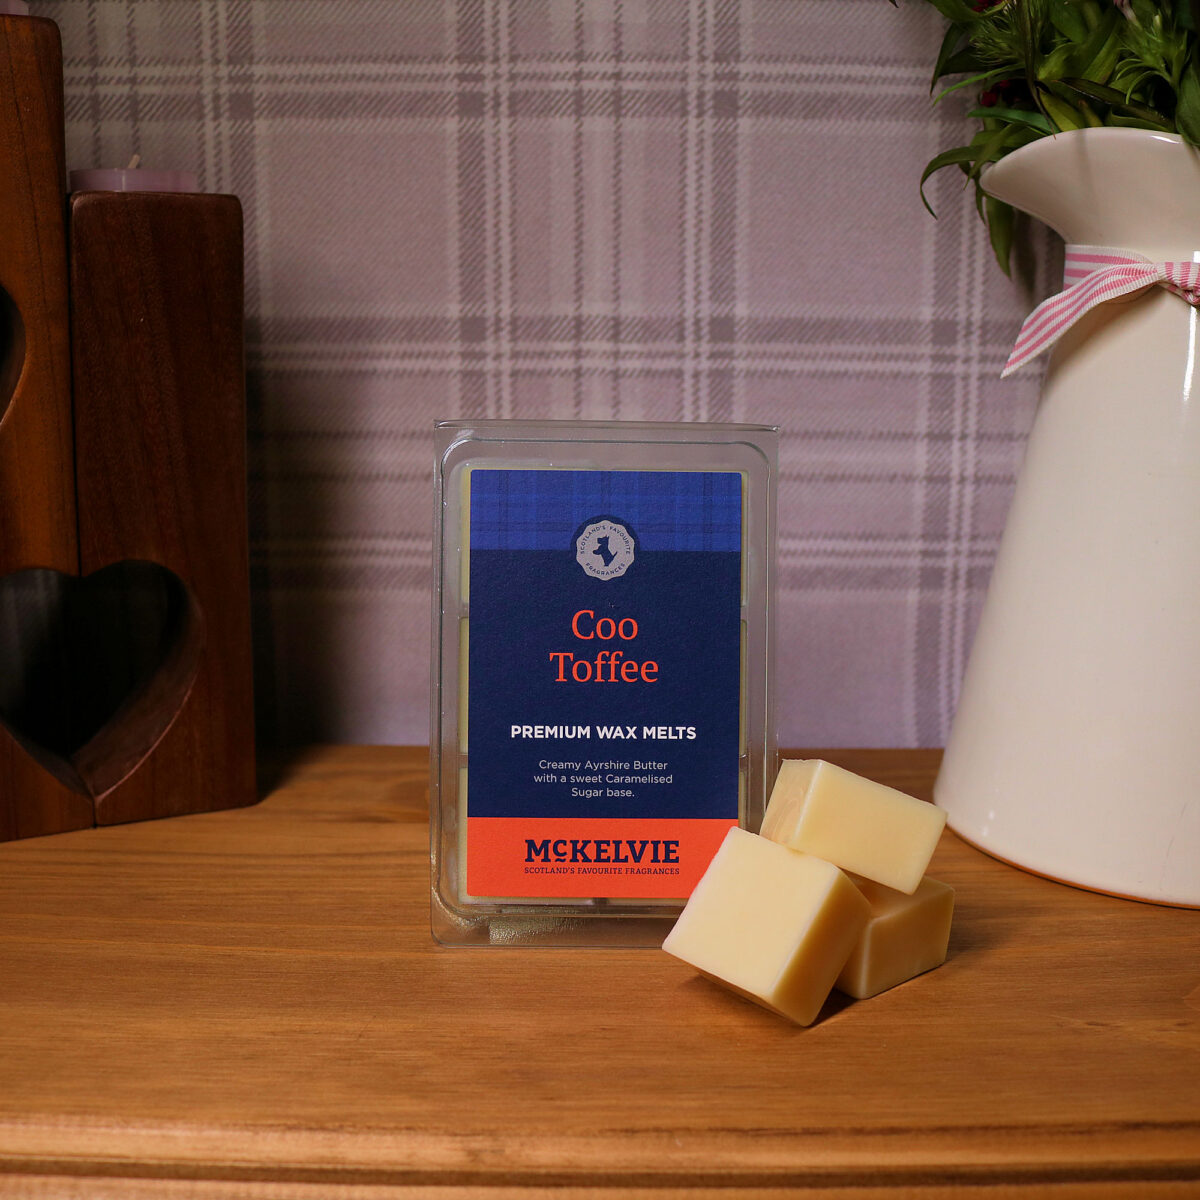 Coo Toffee Wax Melts